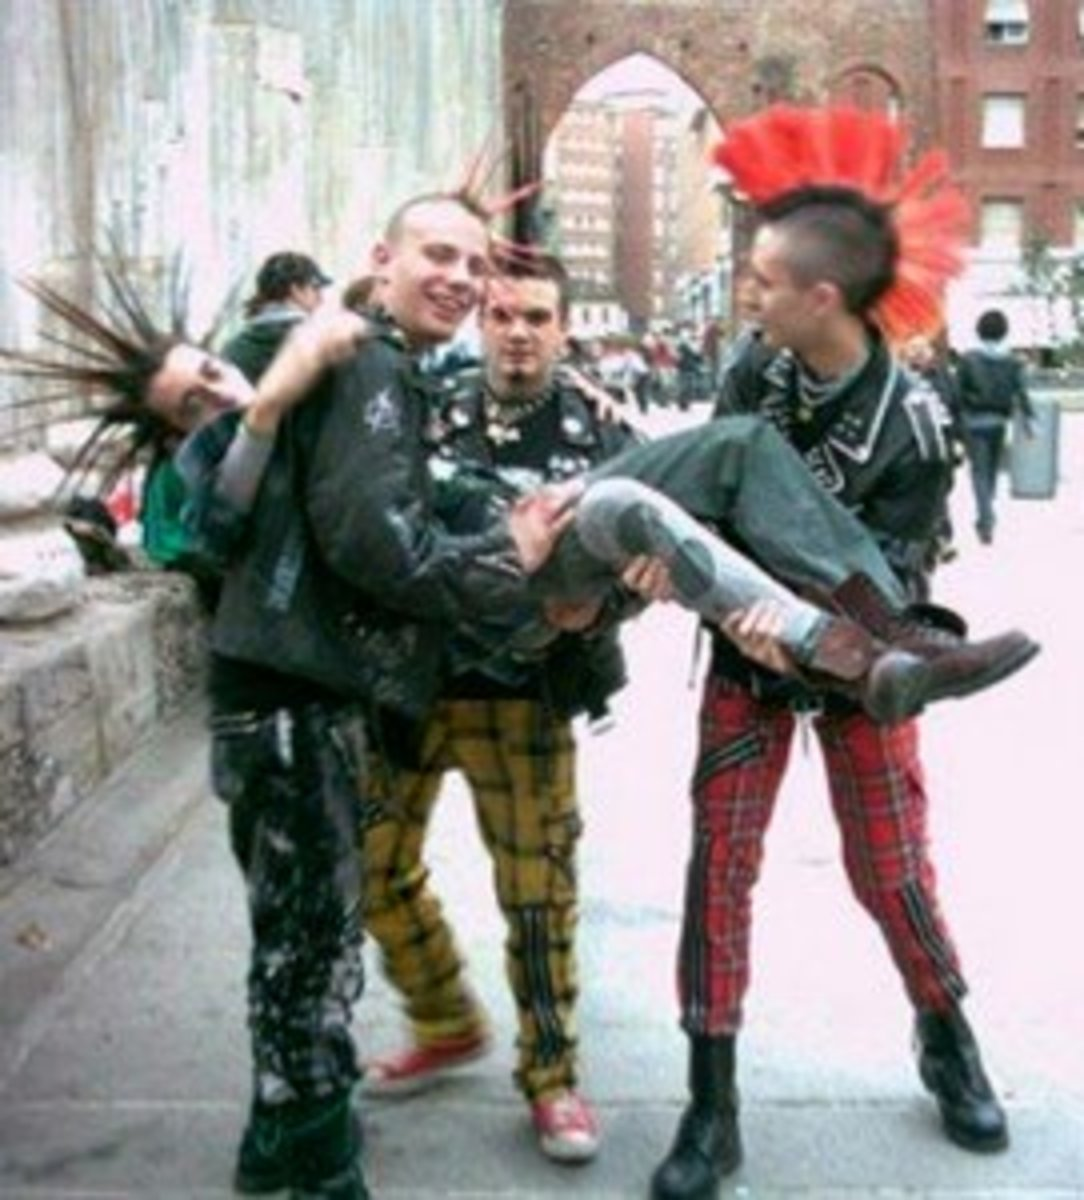 The rebellious punk hairstyles that originated in the 1970s were inspired by Mohawk tribal hair.